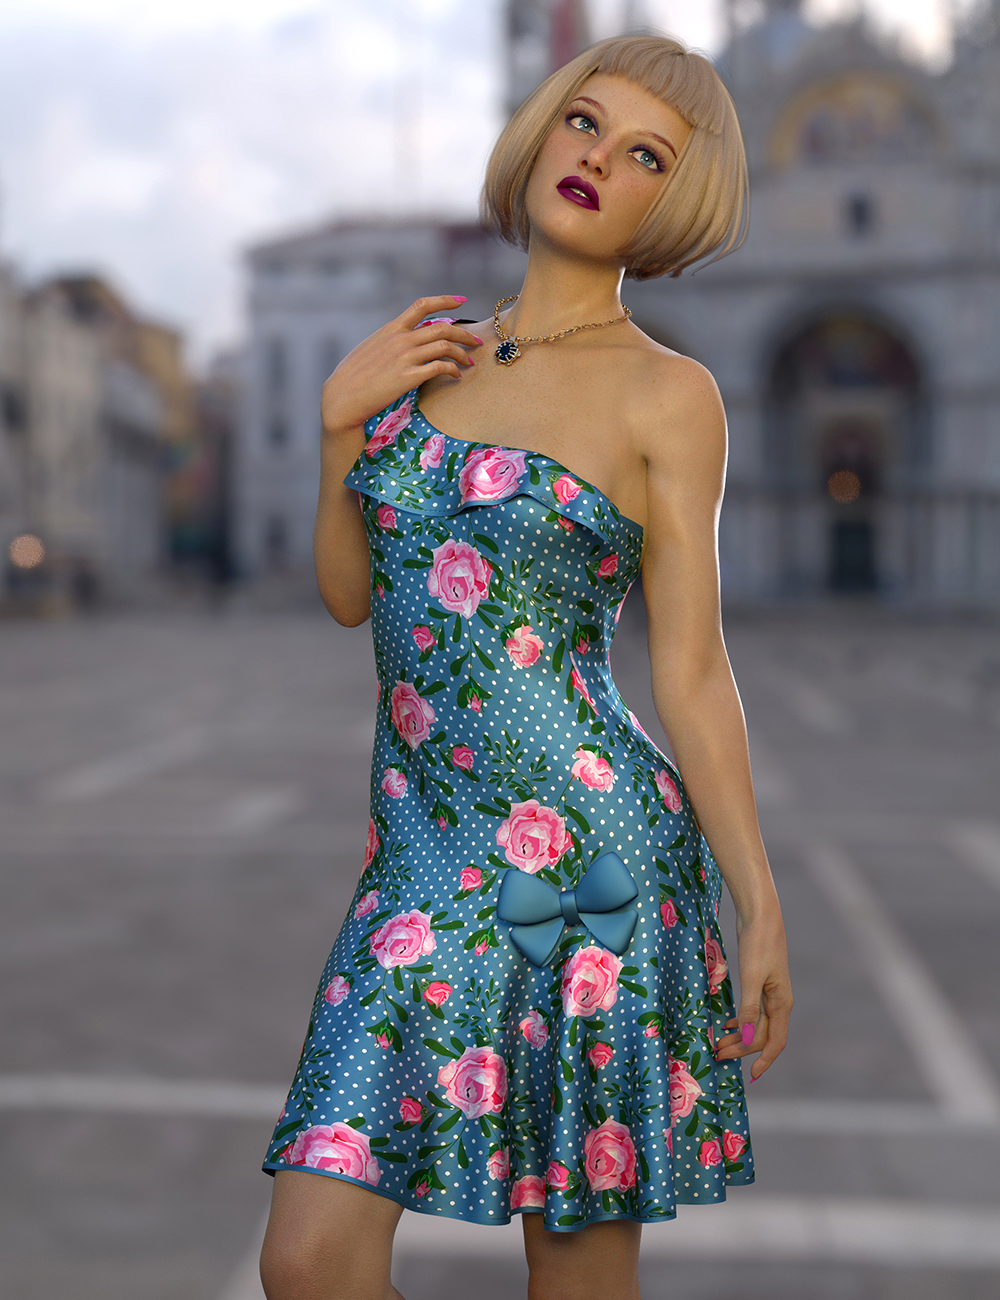 dForce Rose Dress Outfit for Genesis 8 and 8.1 Females by: Nelmi, 3D Models by Daz 3D